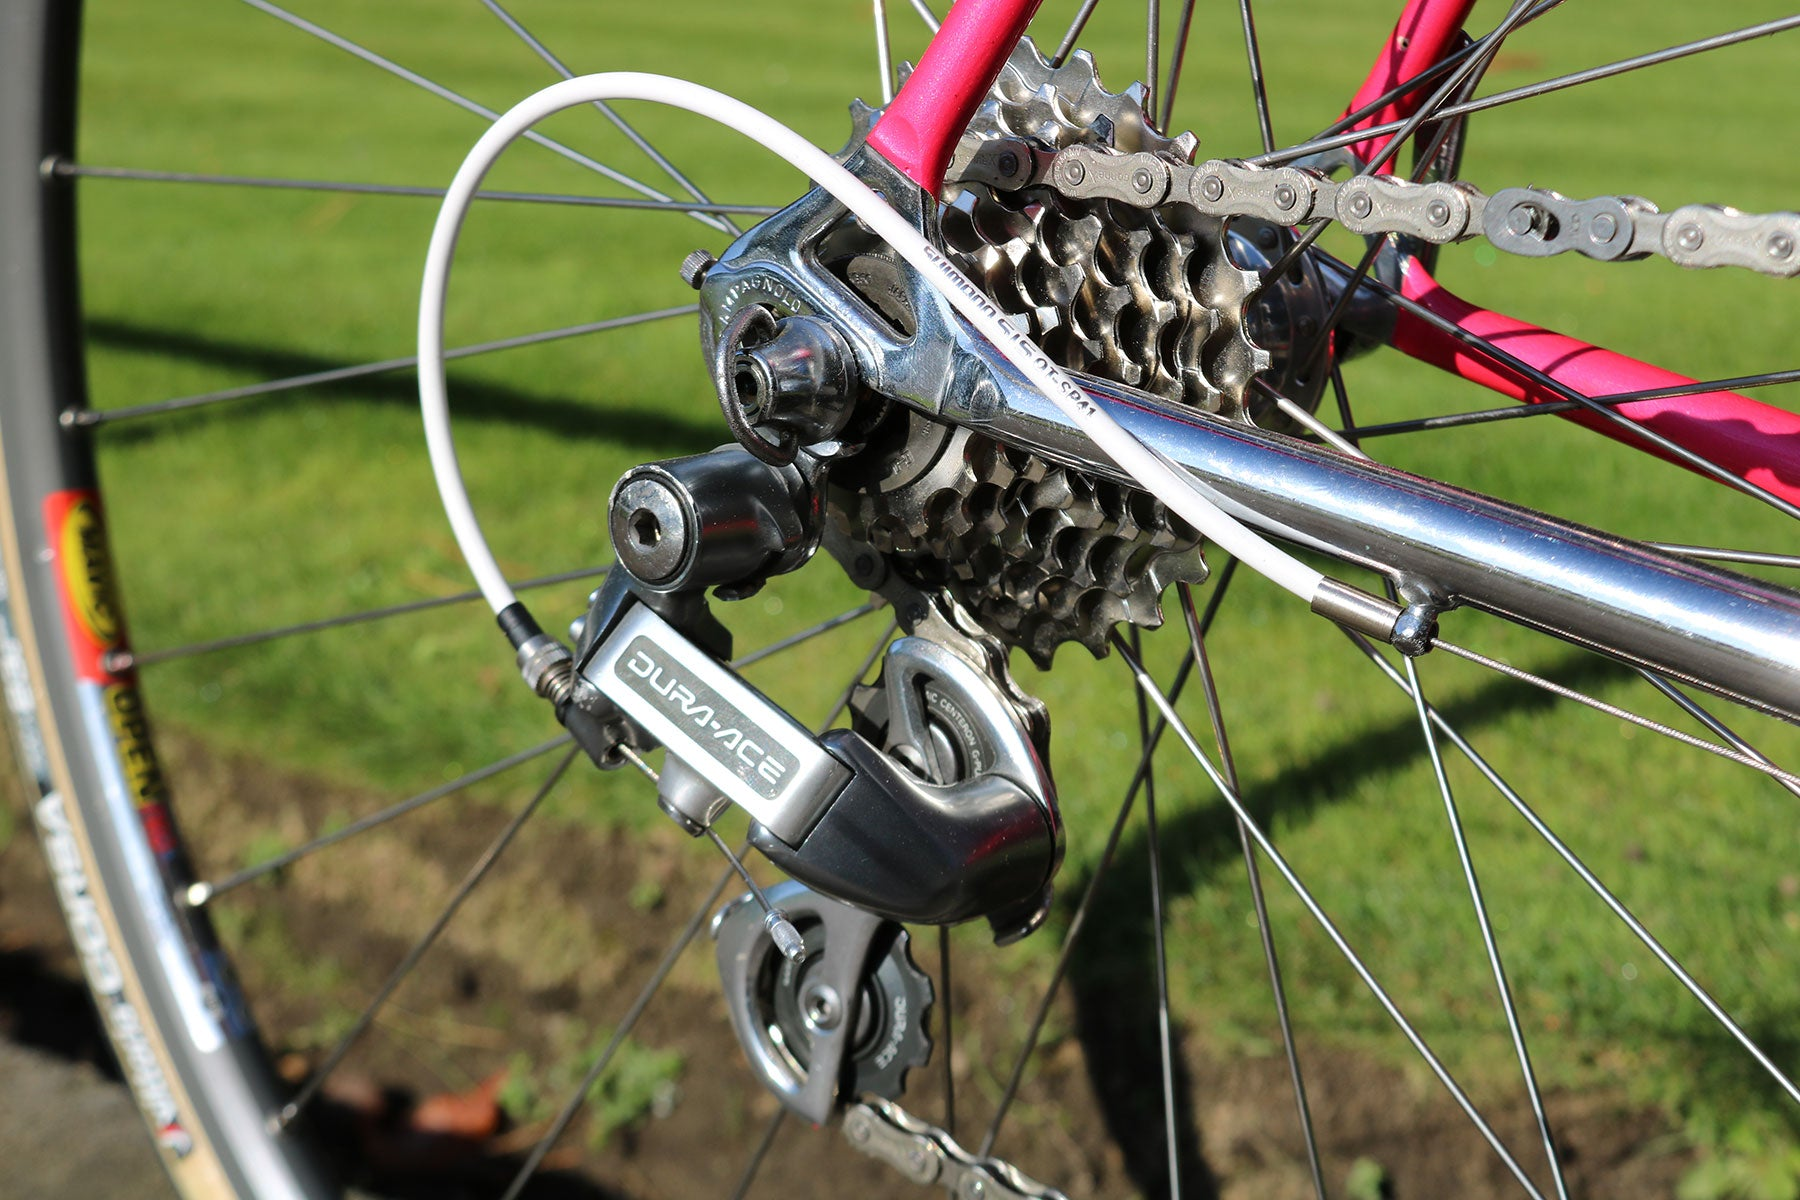 Shimano Dura Ace 8-Speed Rear Derailleur (RD-7402) with hard-to-find white gear cables